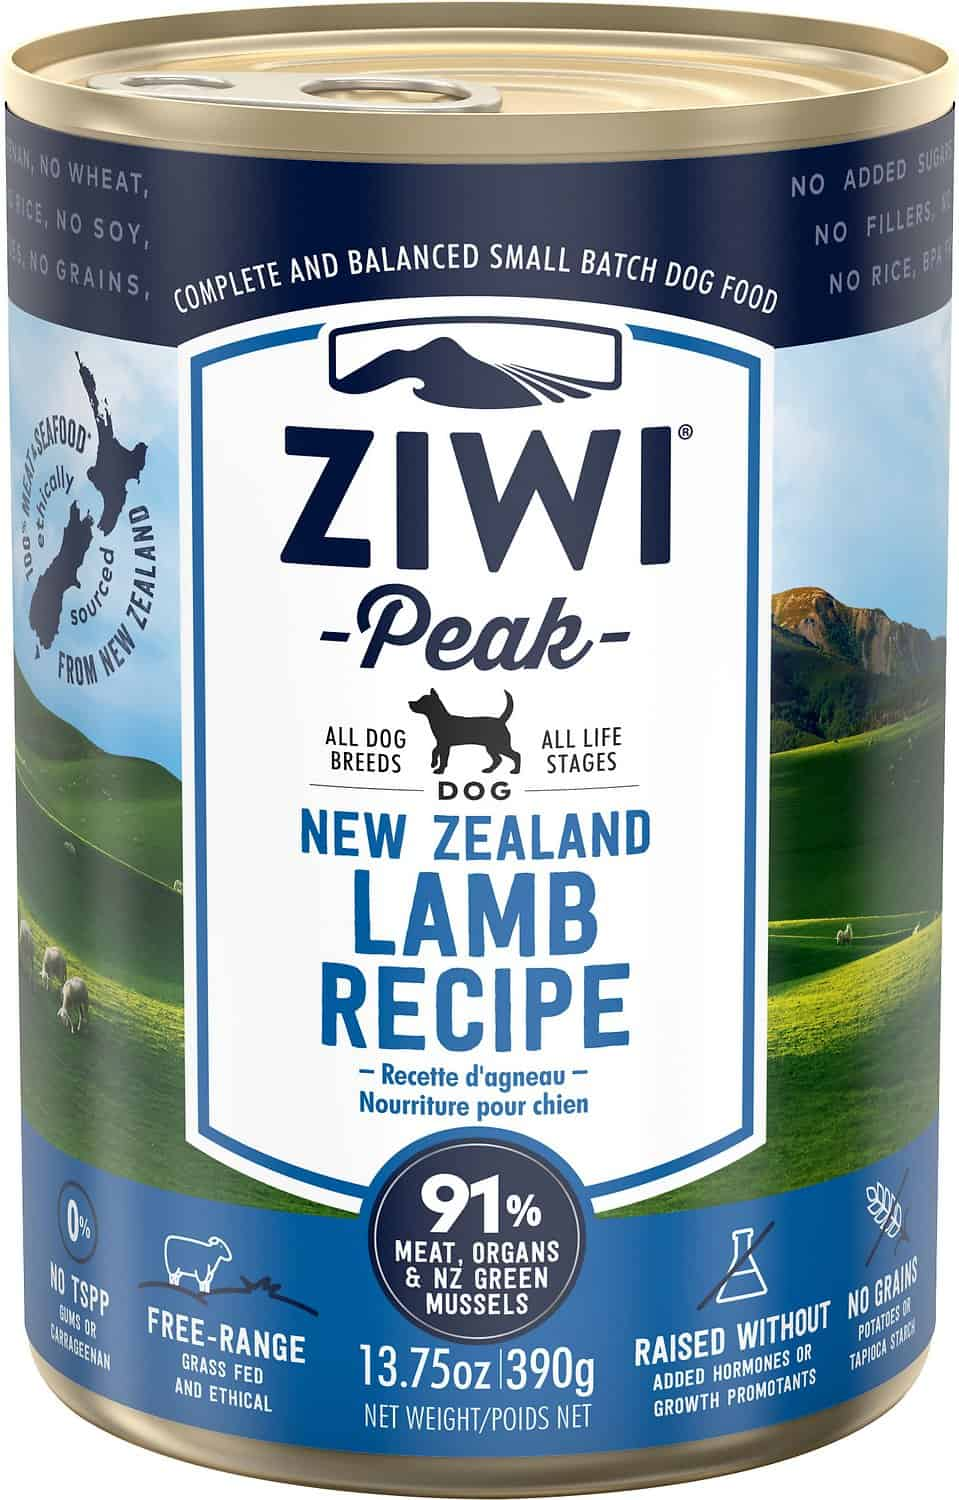 ZiwiPeak Dog Food Review 2020: Taste of Life in New Zealand 20